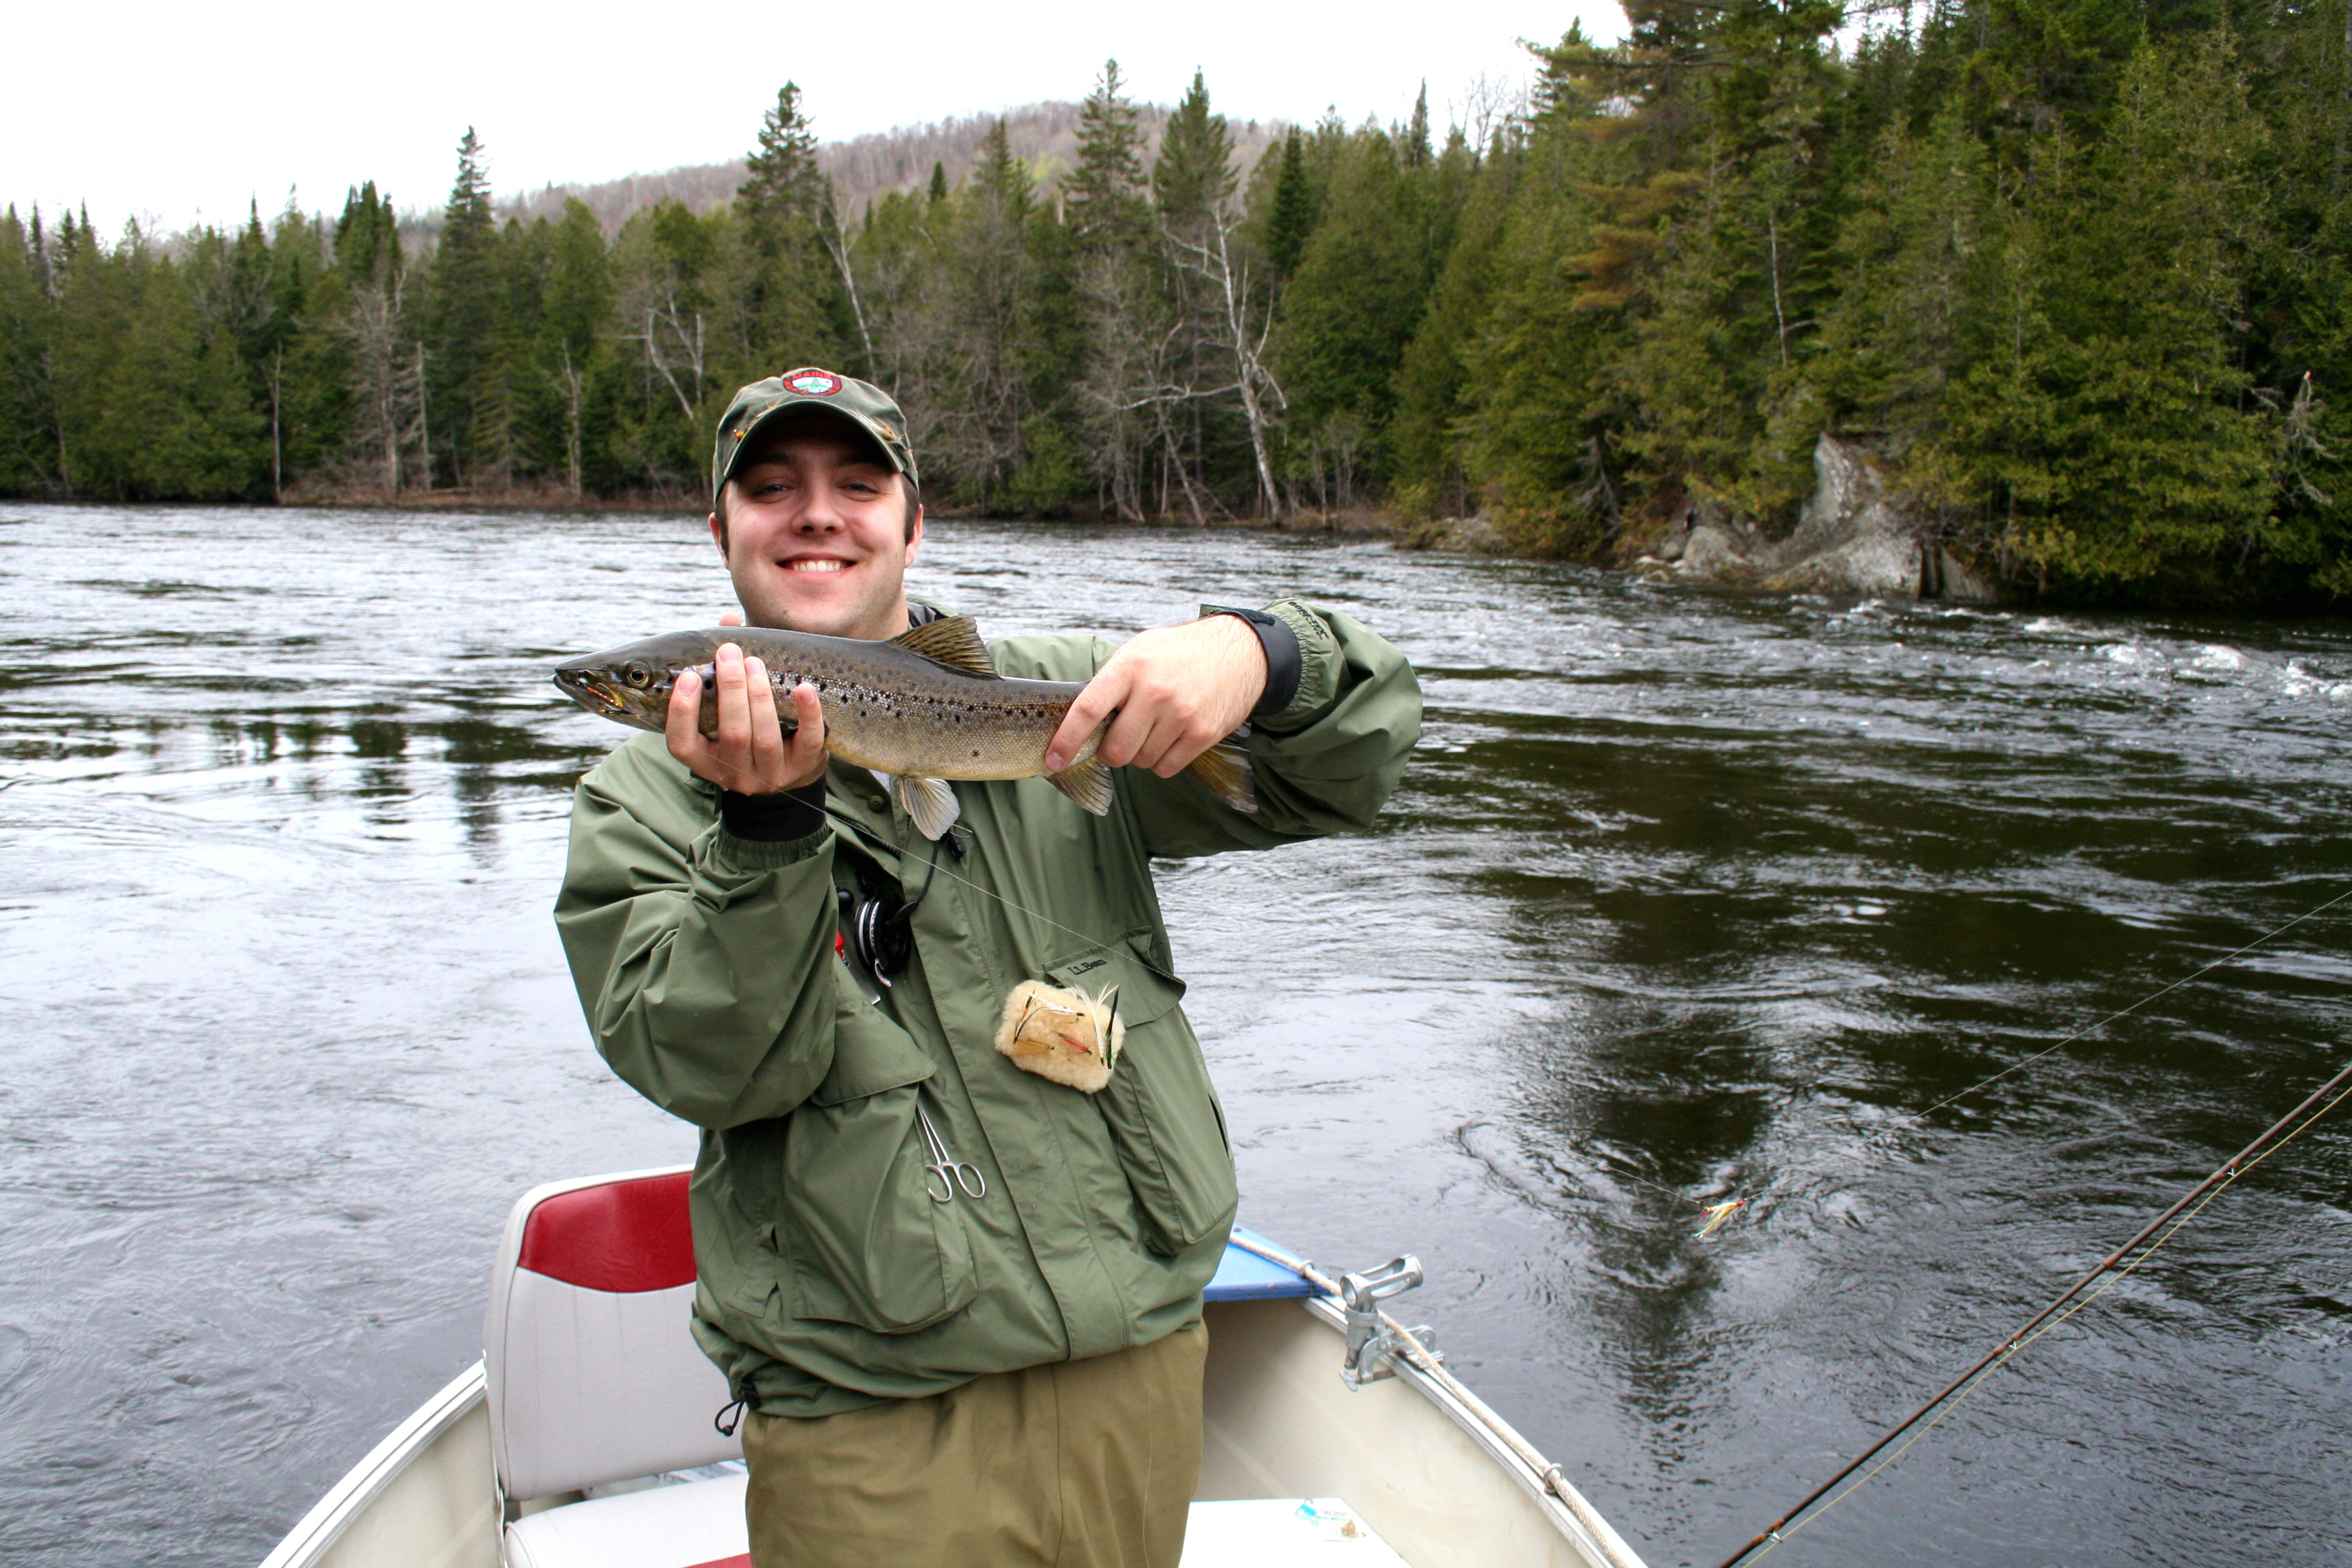 Big Smiles for my first Landlock Salmon of the season. Why I love Fly Fishing